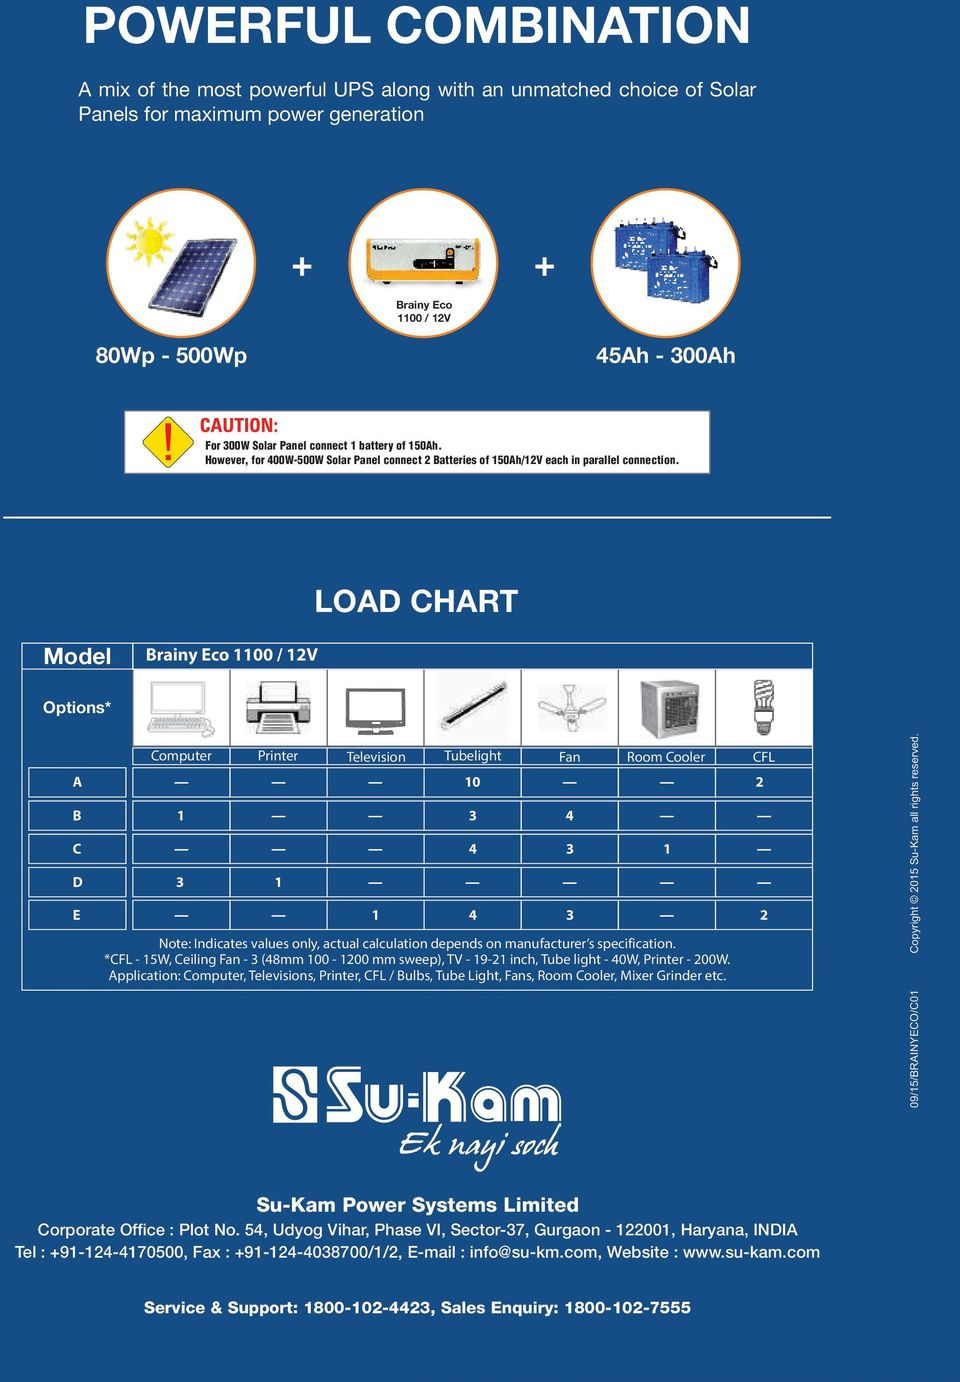 Indias Most Intelligent Solar Home Ups Pdf Wiring Diagram Of Panels Battery Load Fan Chart Model Options Computer Printer Television Tubelight Room Cooler Cfl A